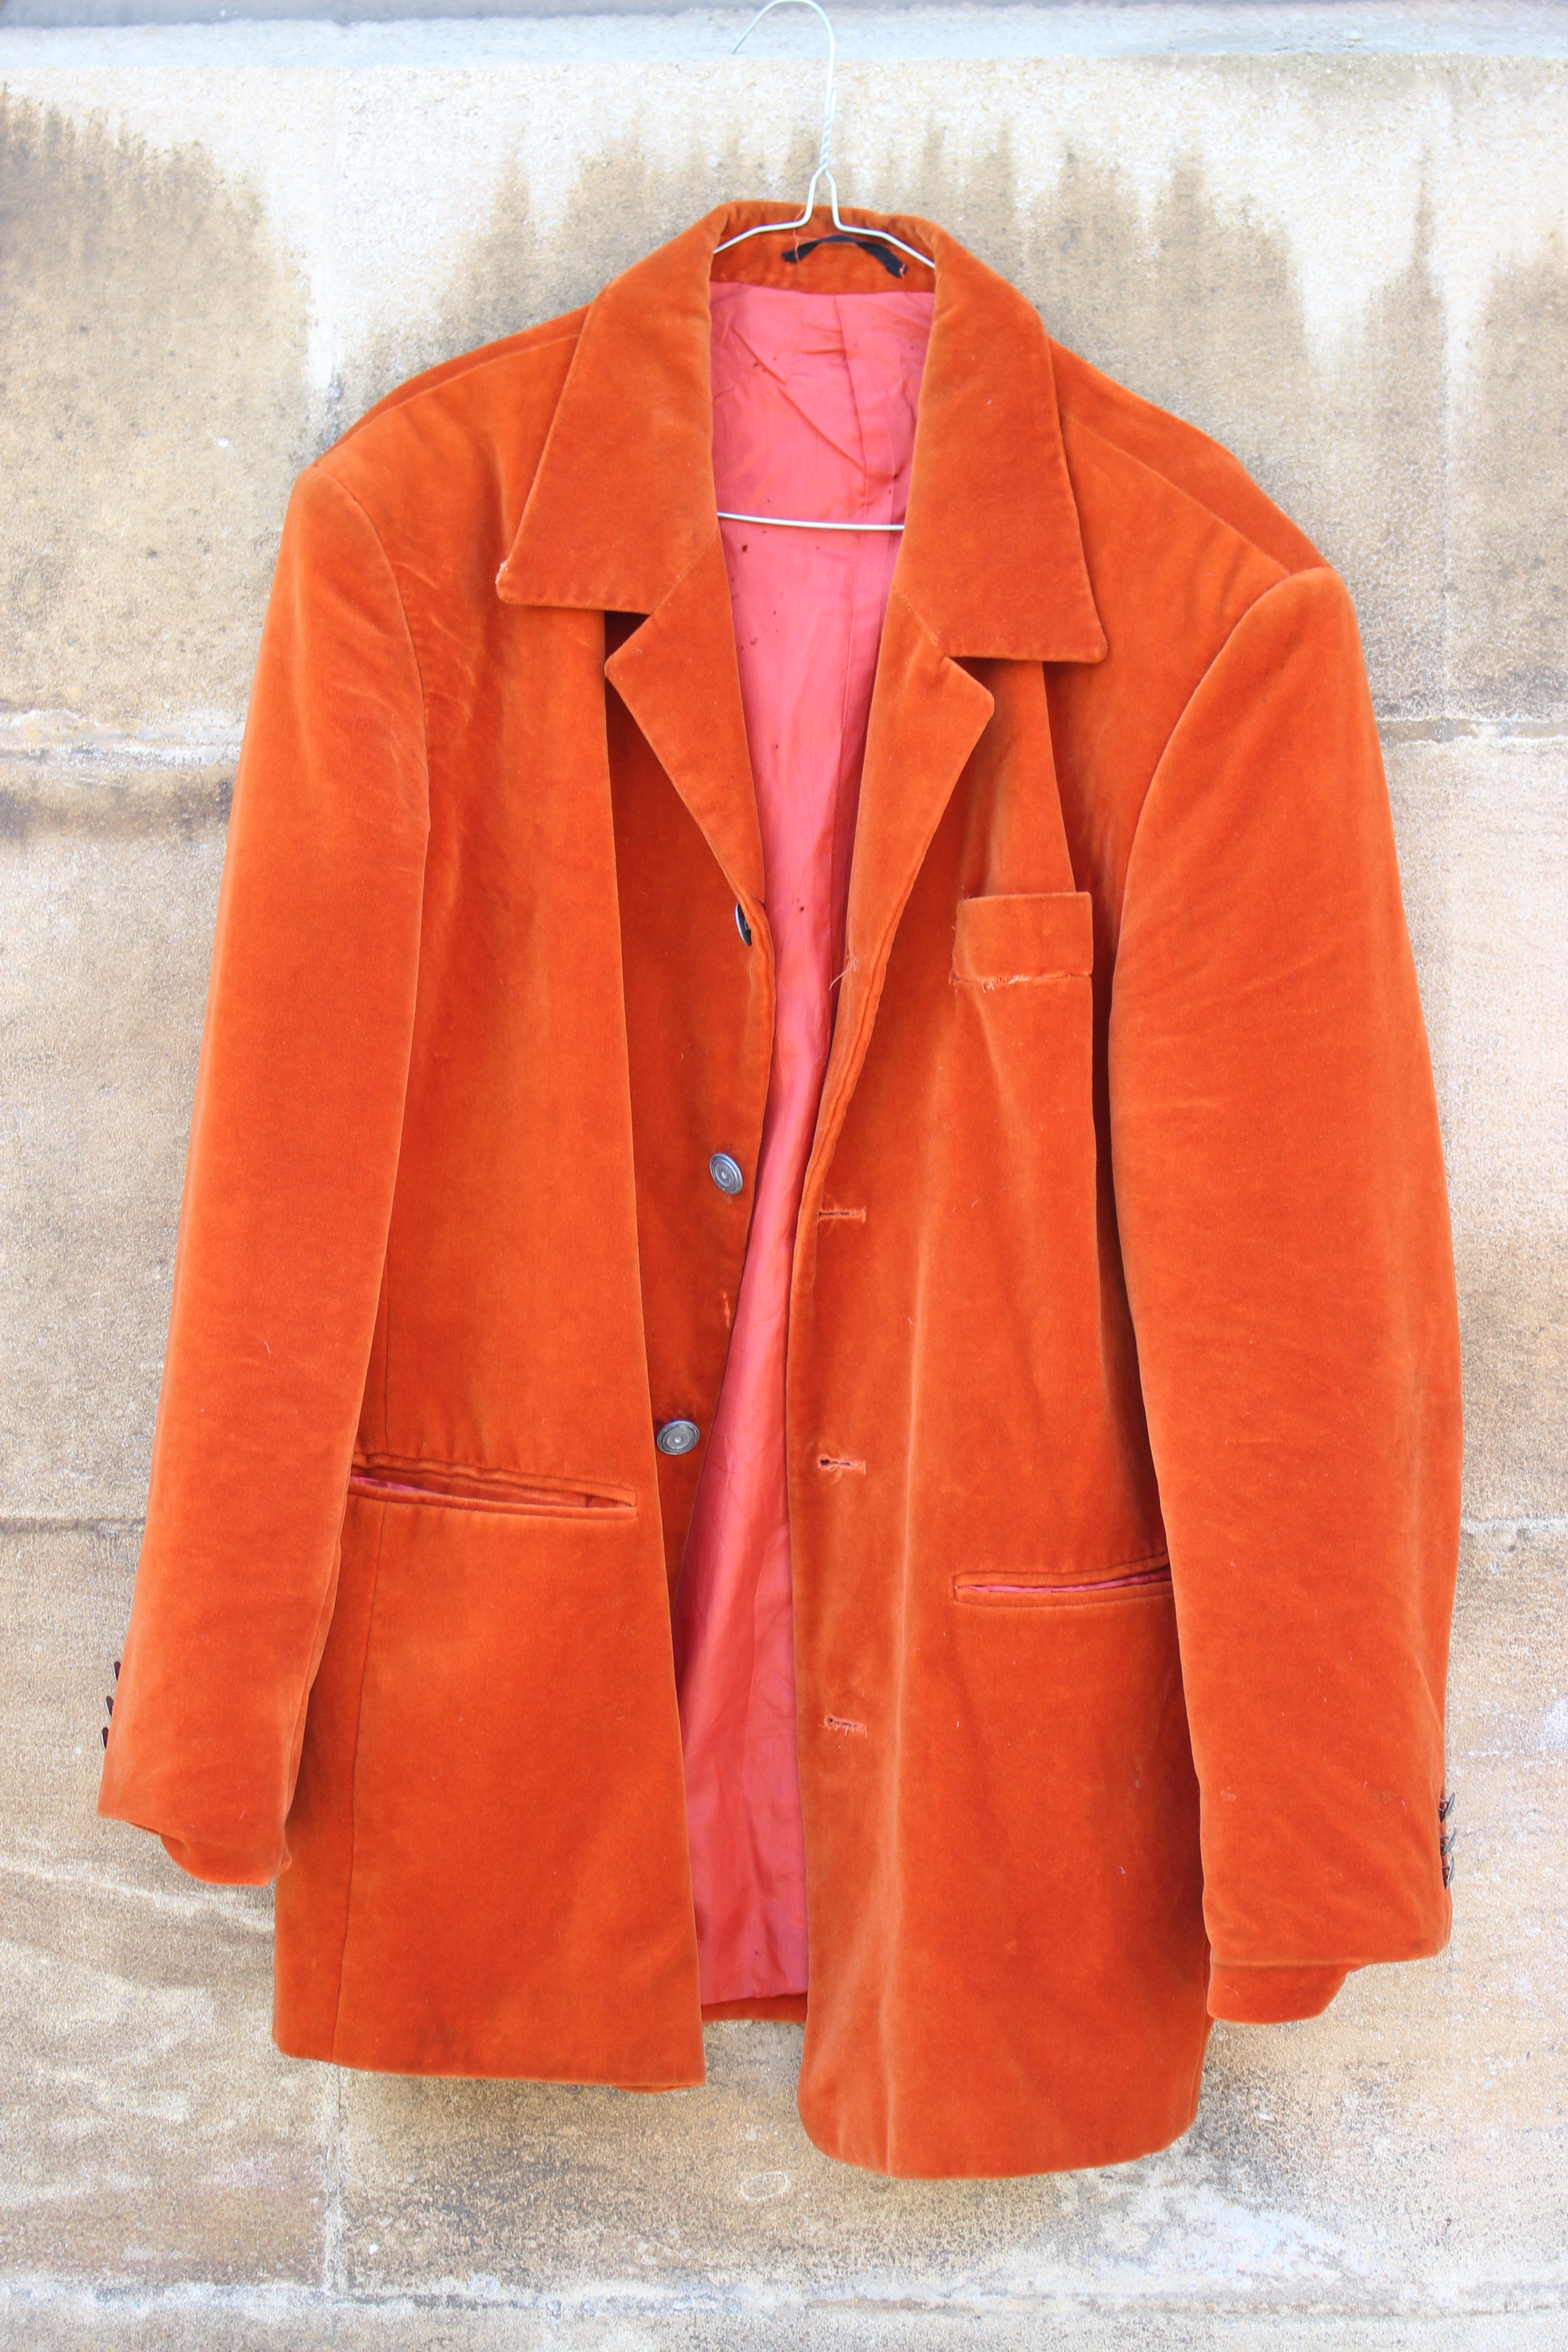 Klaus Rheiner orange velvet jacket